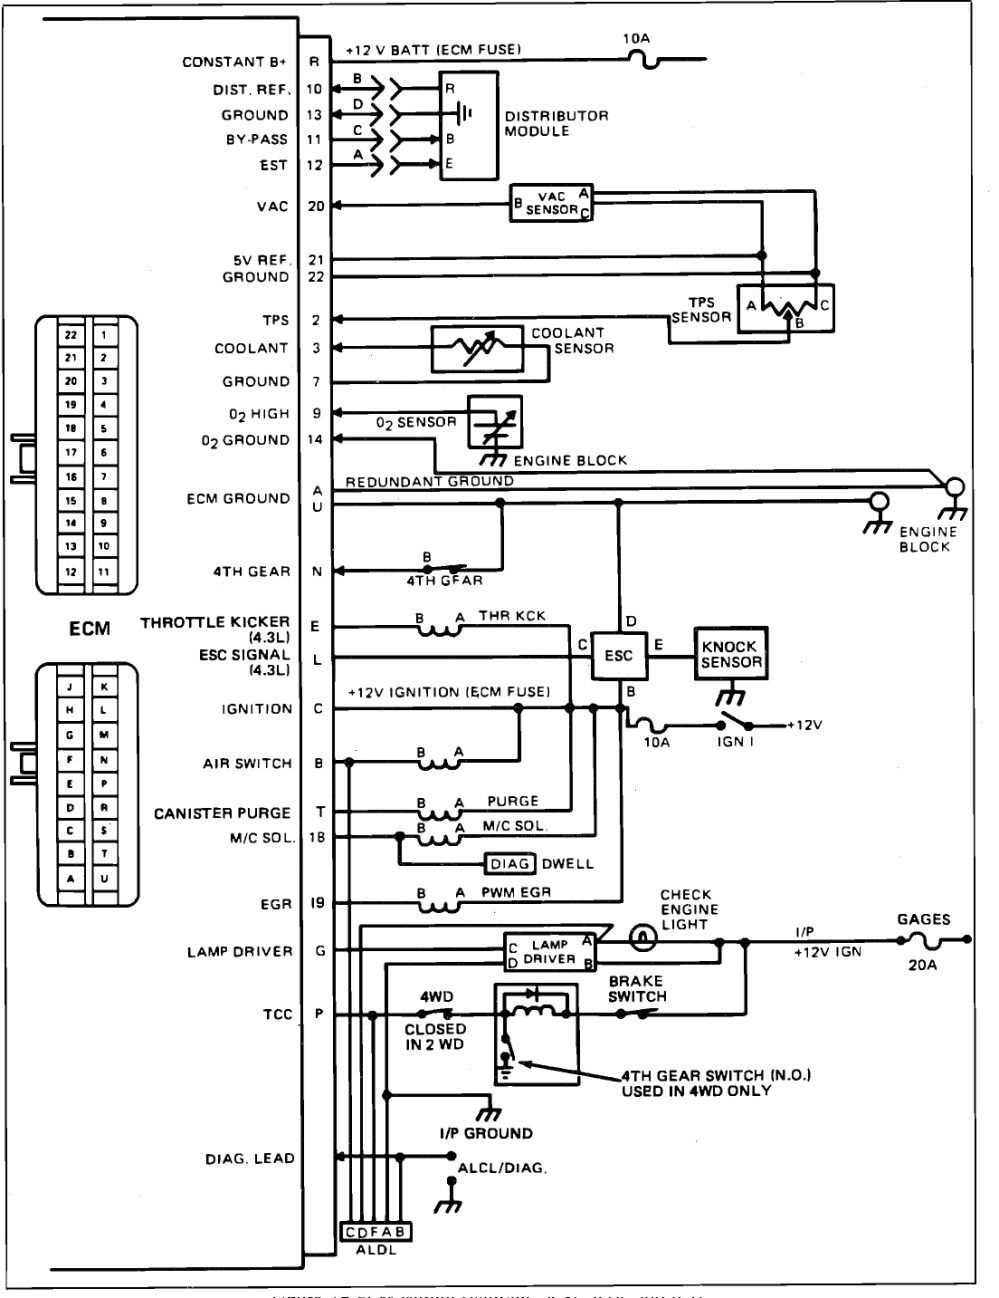 medium resolution of 1999 chevy lumina engine wiring diagram wiring library lumina engine diagram http gtcarlotcom data chevrolet lumina 1996